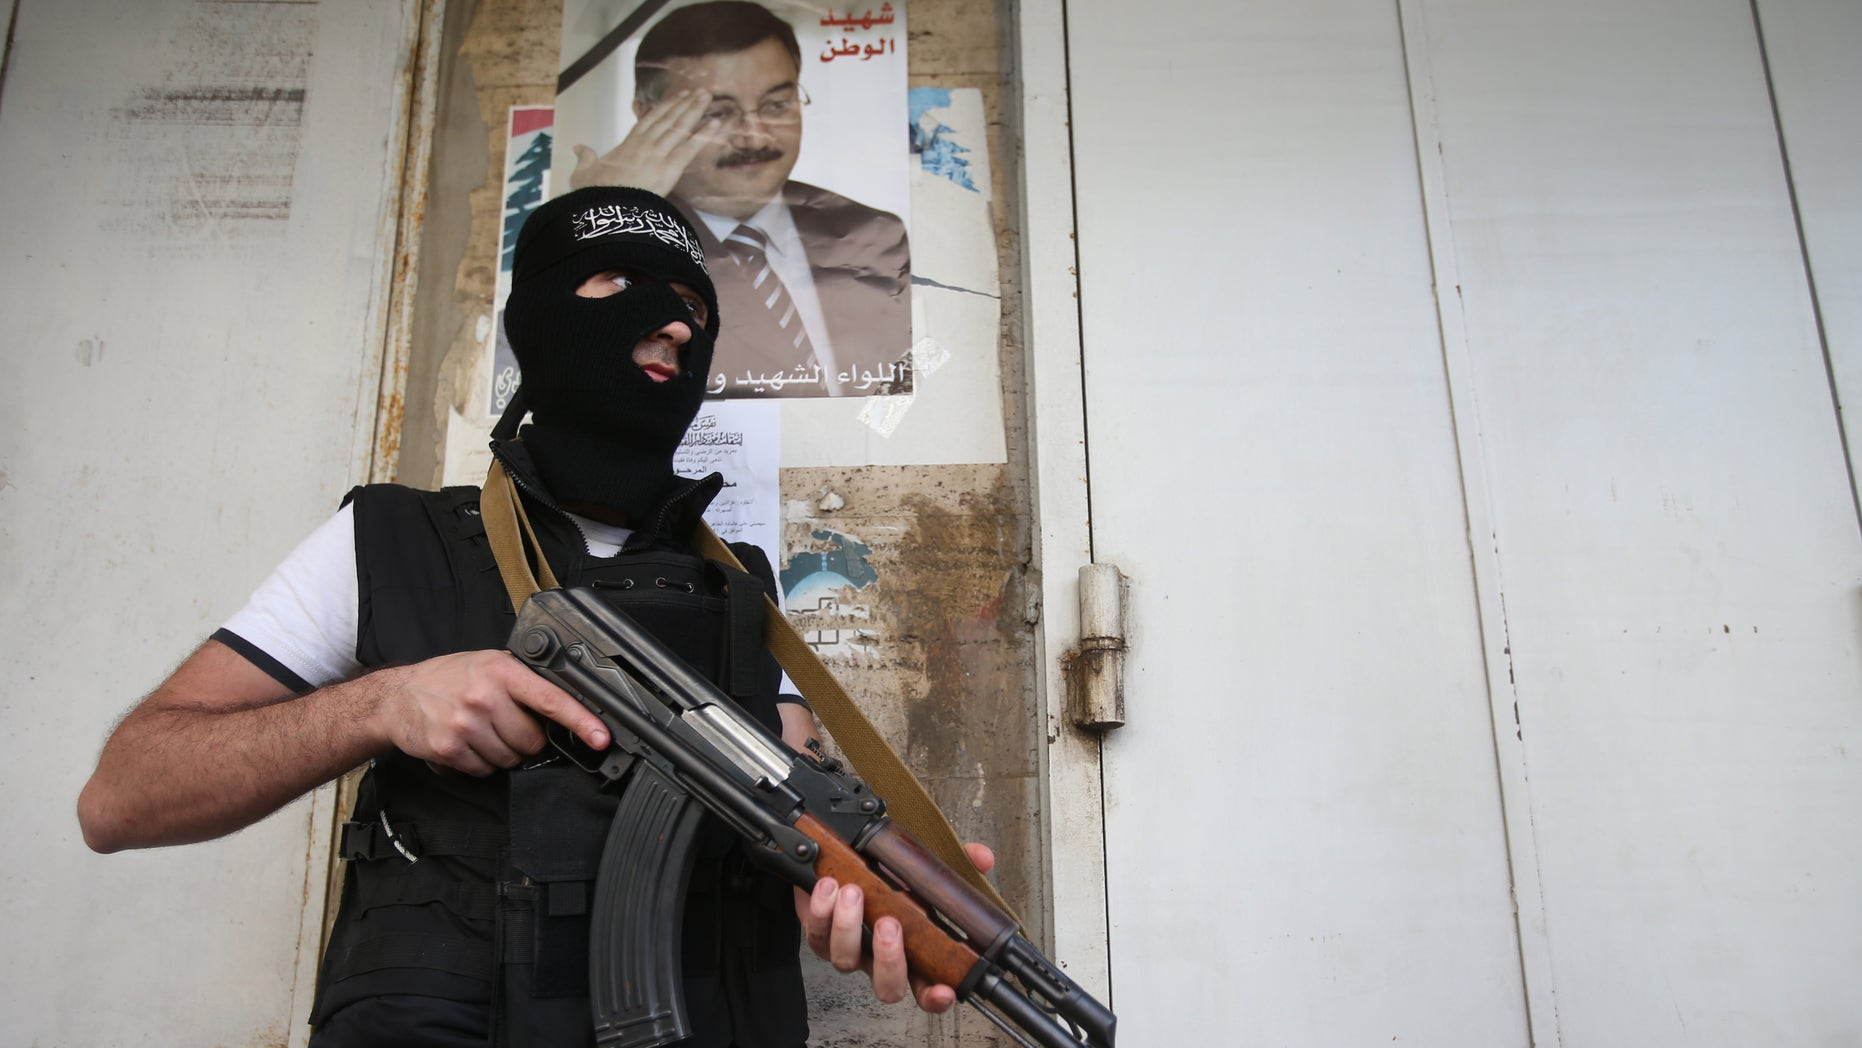 A masked Sunni gunman stands guard under a portrait of Brig. Gen. Wissam al-Hassan, who was assassinated on Friday by a car bomb, on a blocked street leading to a Shiite neighborhood after overnight clashes that erupted between Sunni and Shiite gunmen in Beirut, Lebanon, Monday Oct. 22, 2012. Lebanese security officials say overnight clashes in Beirut between Sunni and Shiite gunmen have wounded several people. The officials say troops managed to separate the gunmen and calm returned Monday morning to the two neighborhoods in the capital where fighting had erupted. (AP Photo/Hussein Malla)